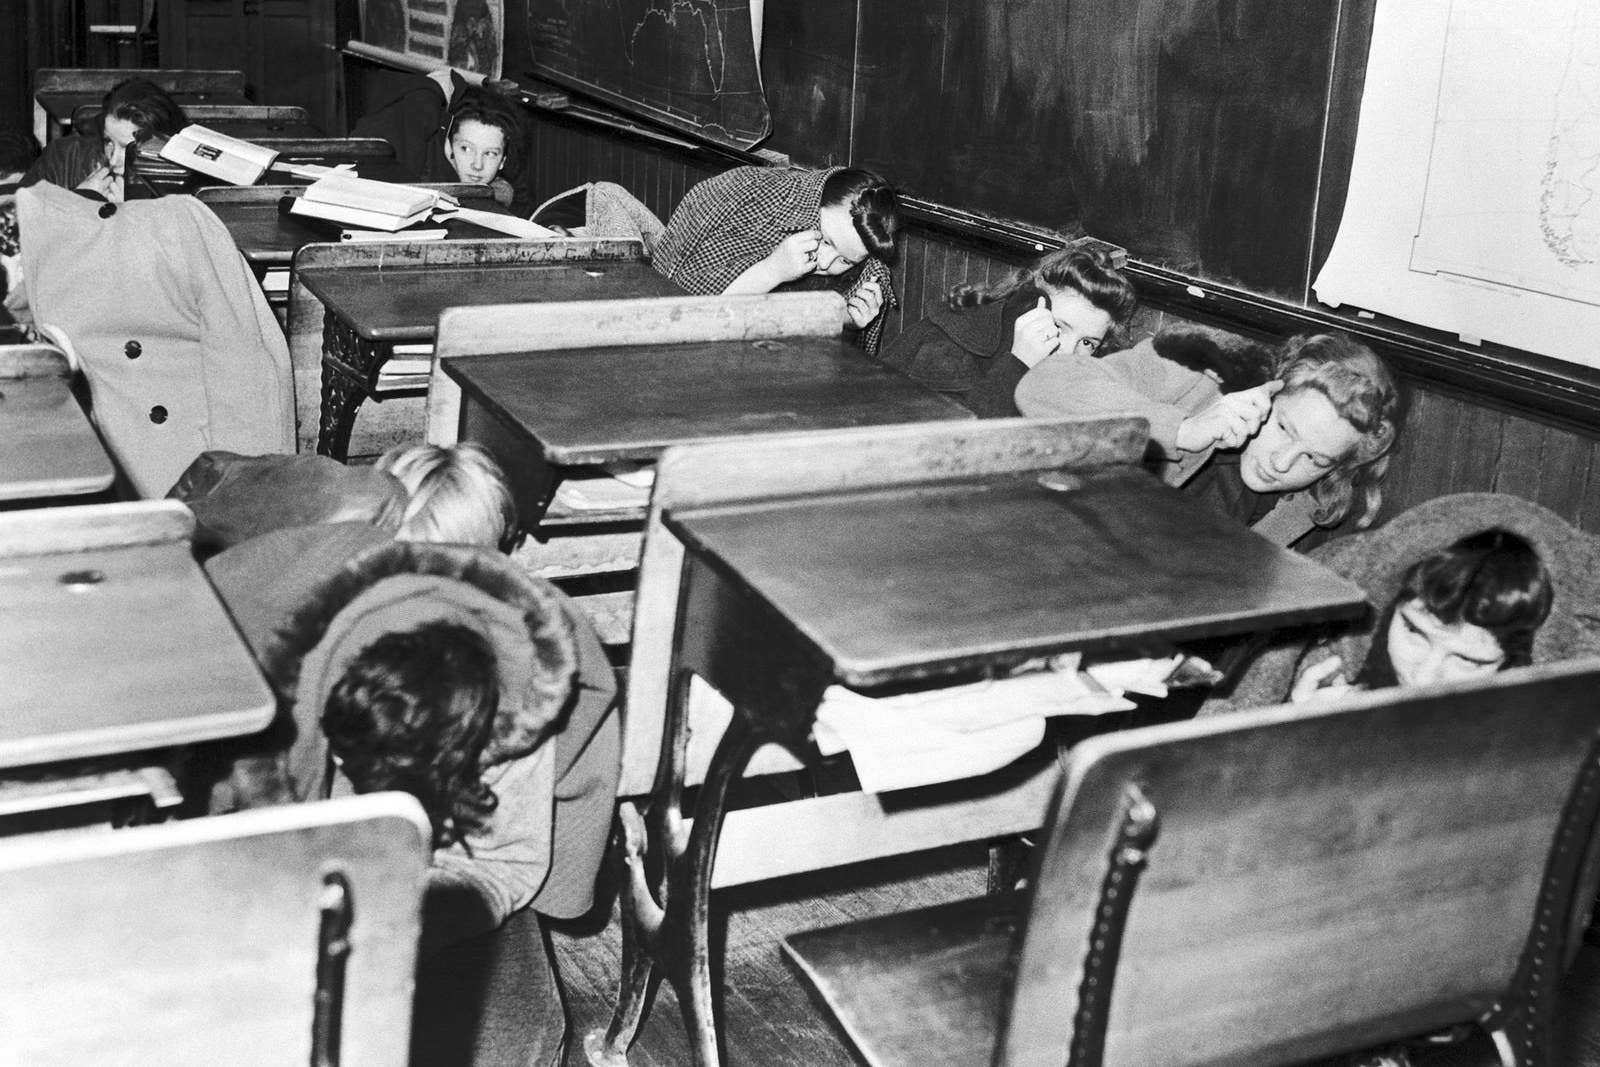 Schoolkids practice an air raid drill at an undisclosed location on Dec. 14, 1941.